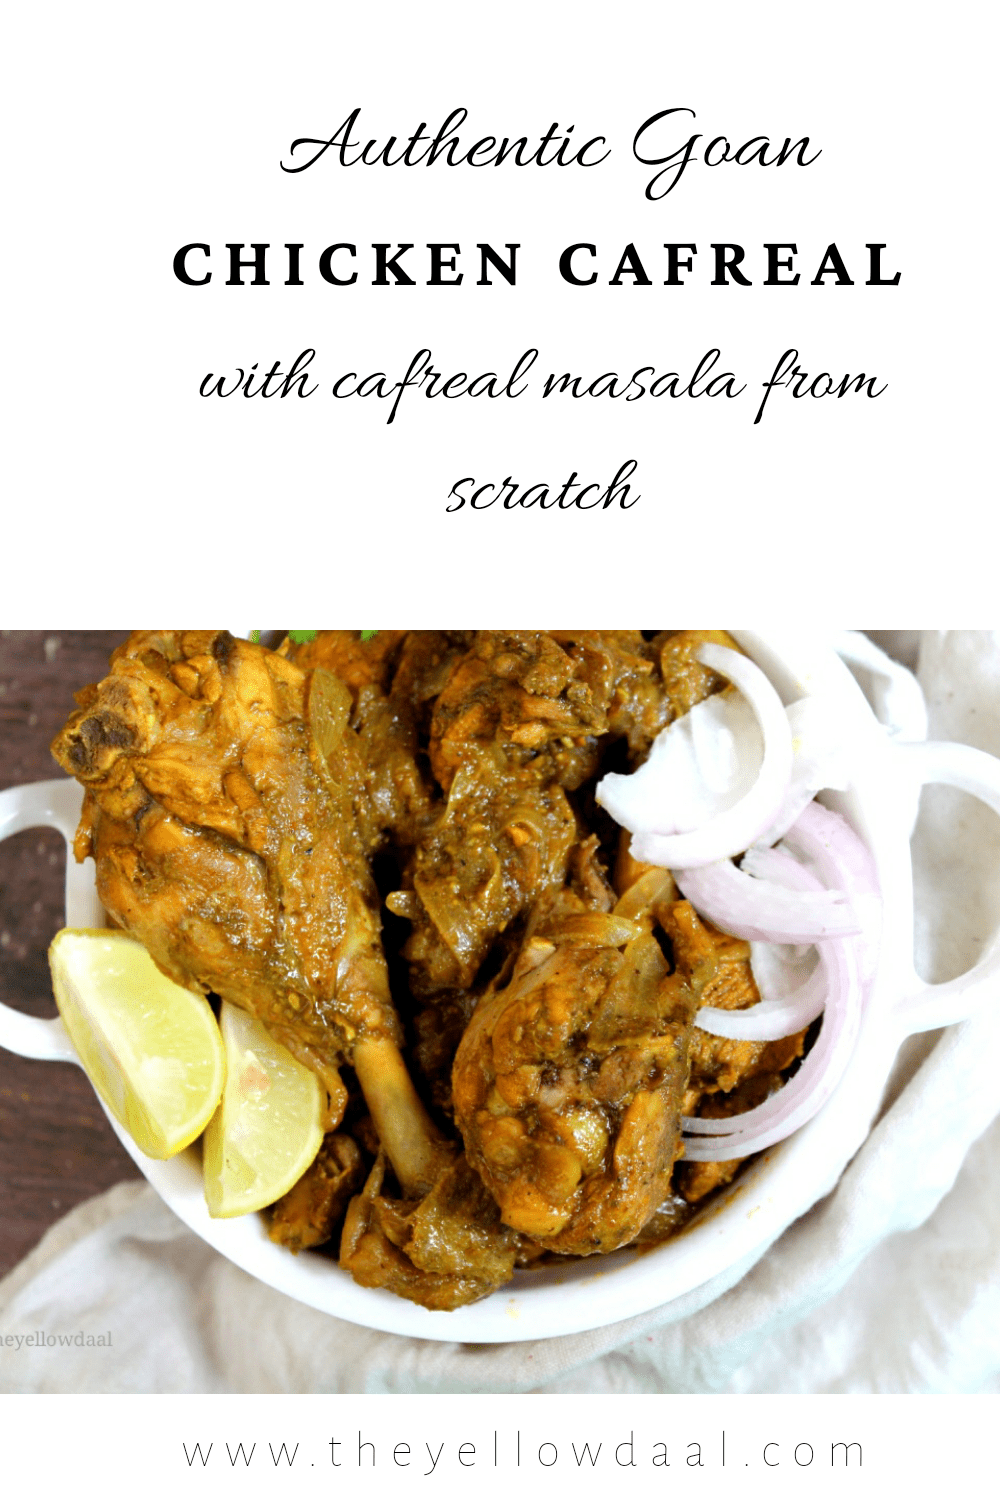 Chicken-cafreal-pinterest